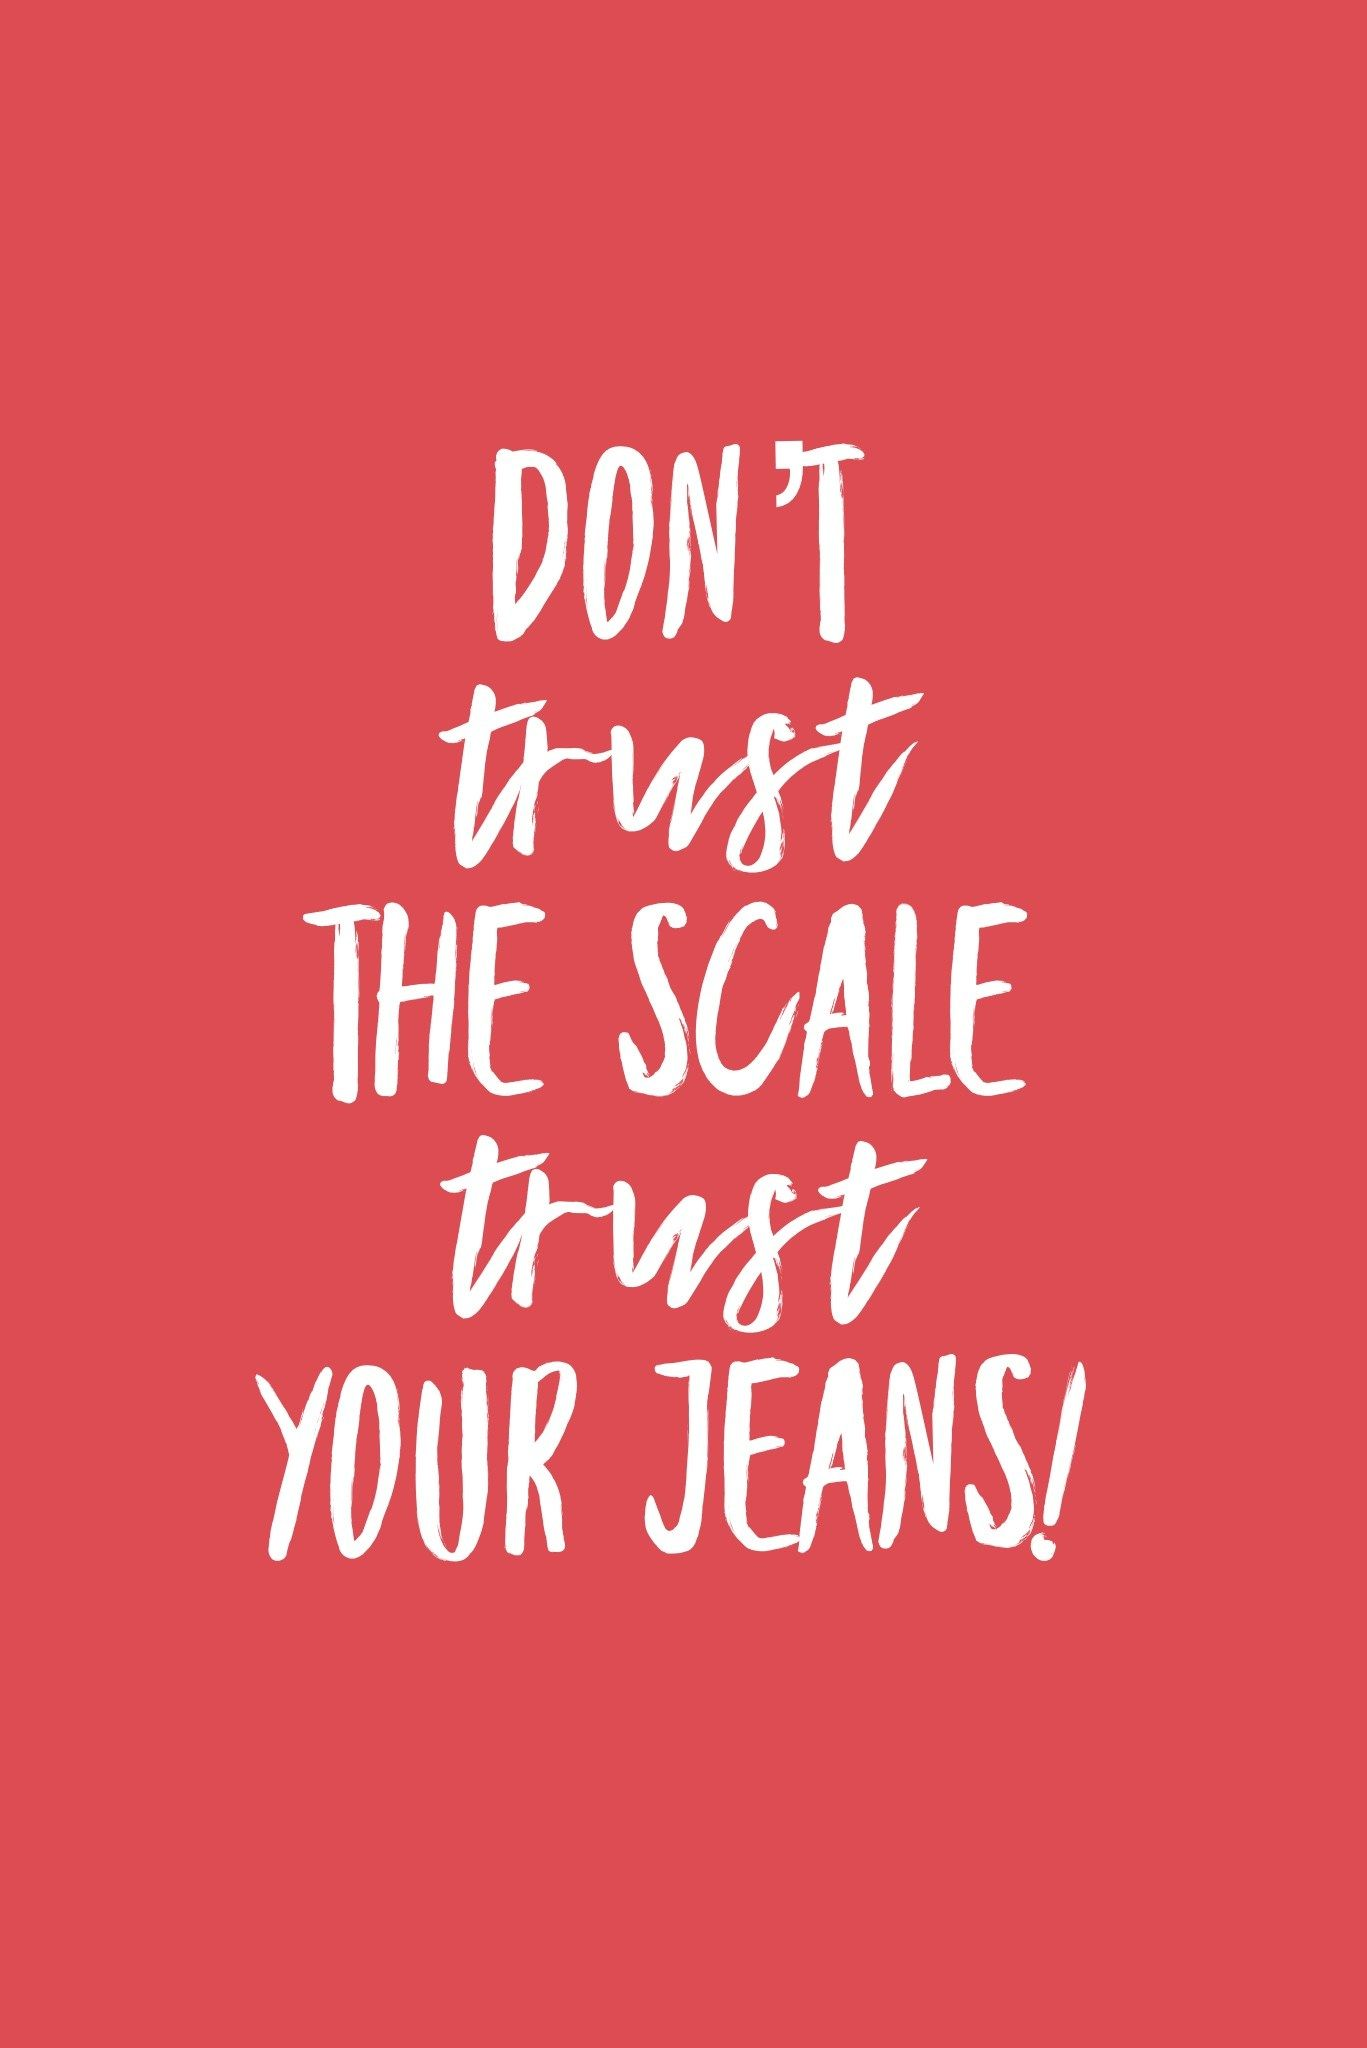 Why I Don't Watch the Scale! -